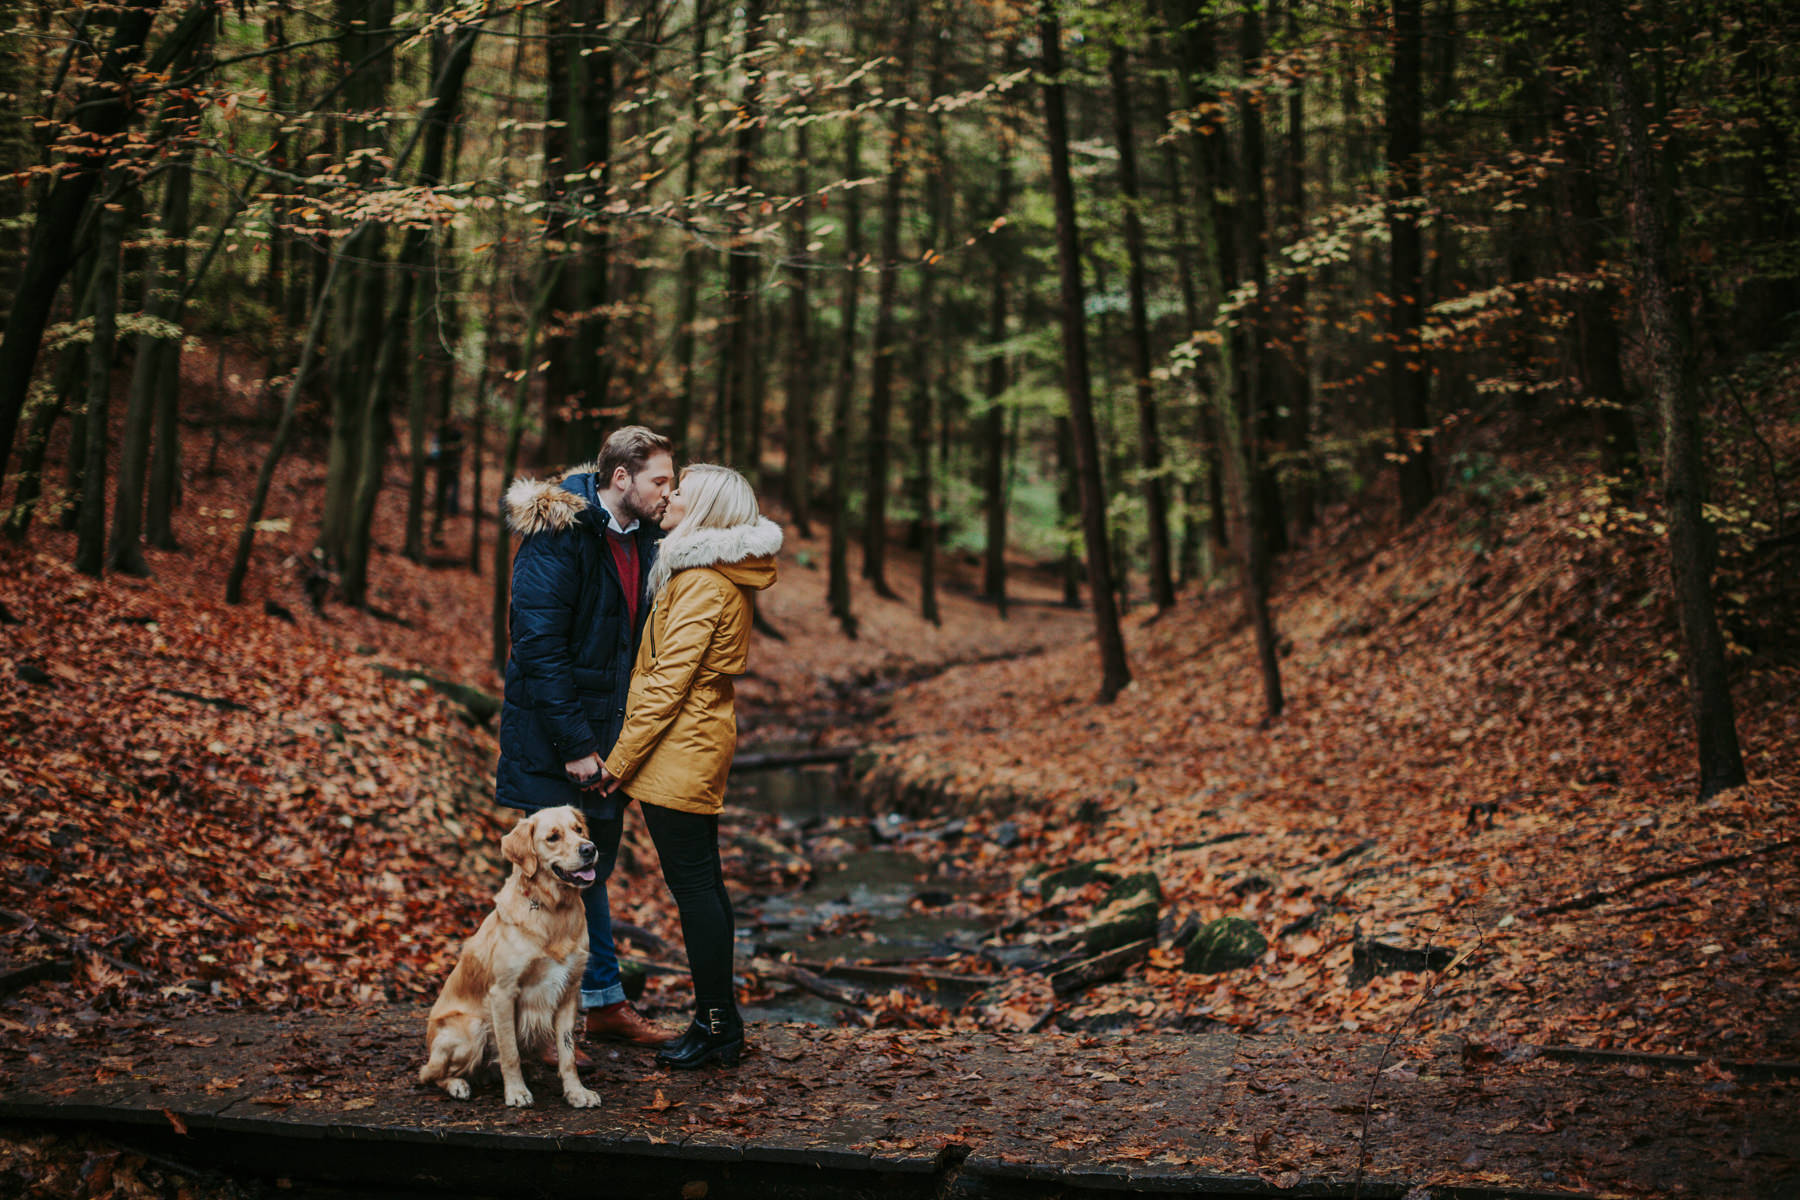 Emily & Phil | Newmillerdam engagement shoot 29